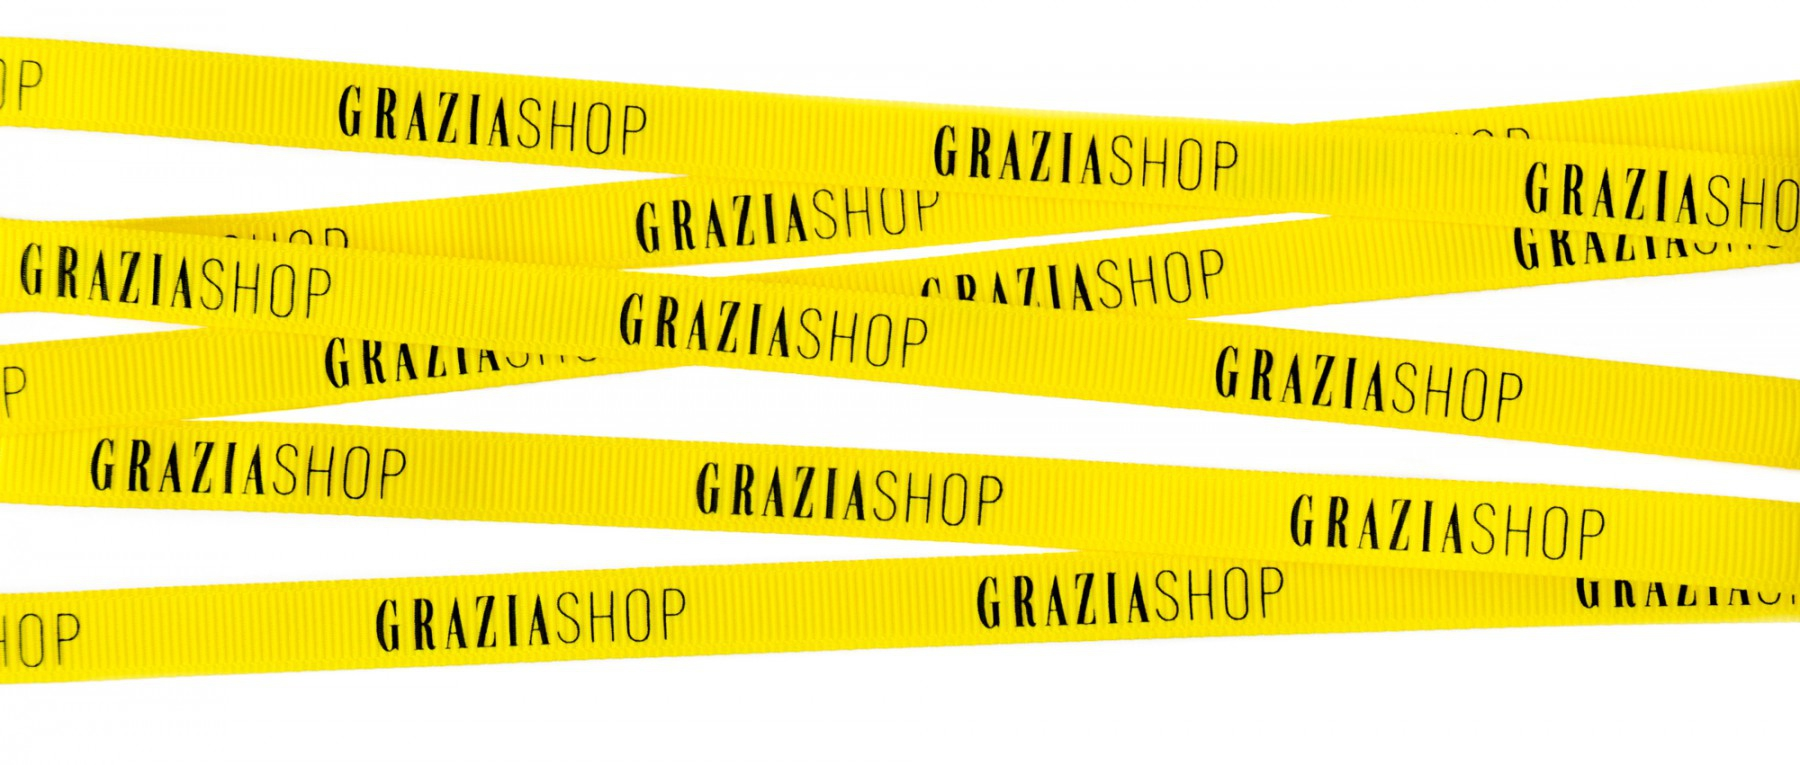 SVIDesign - Grazia Shop